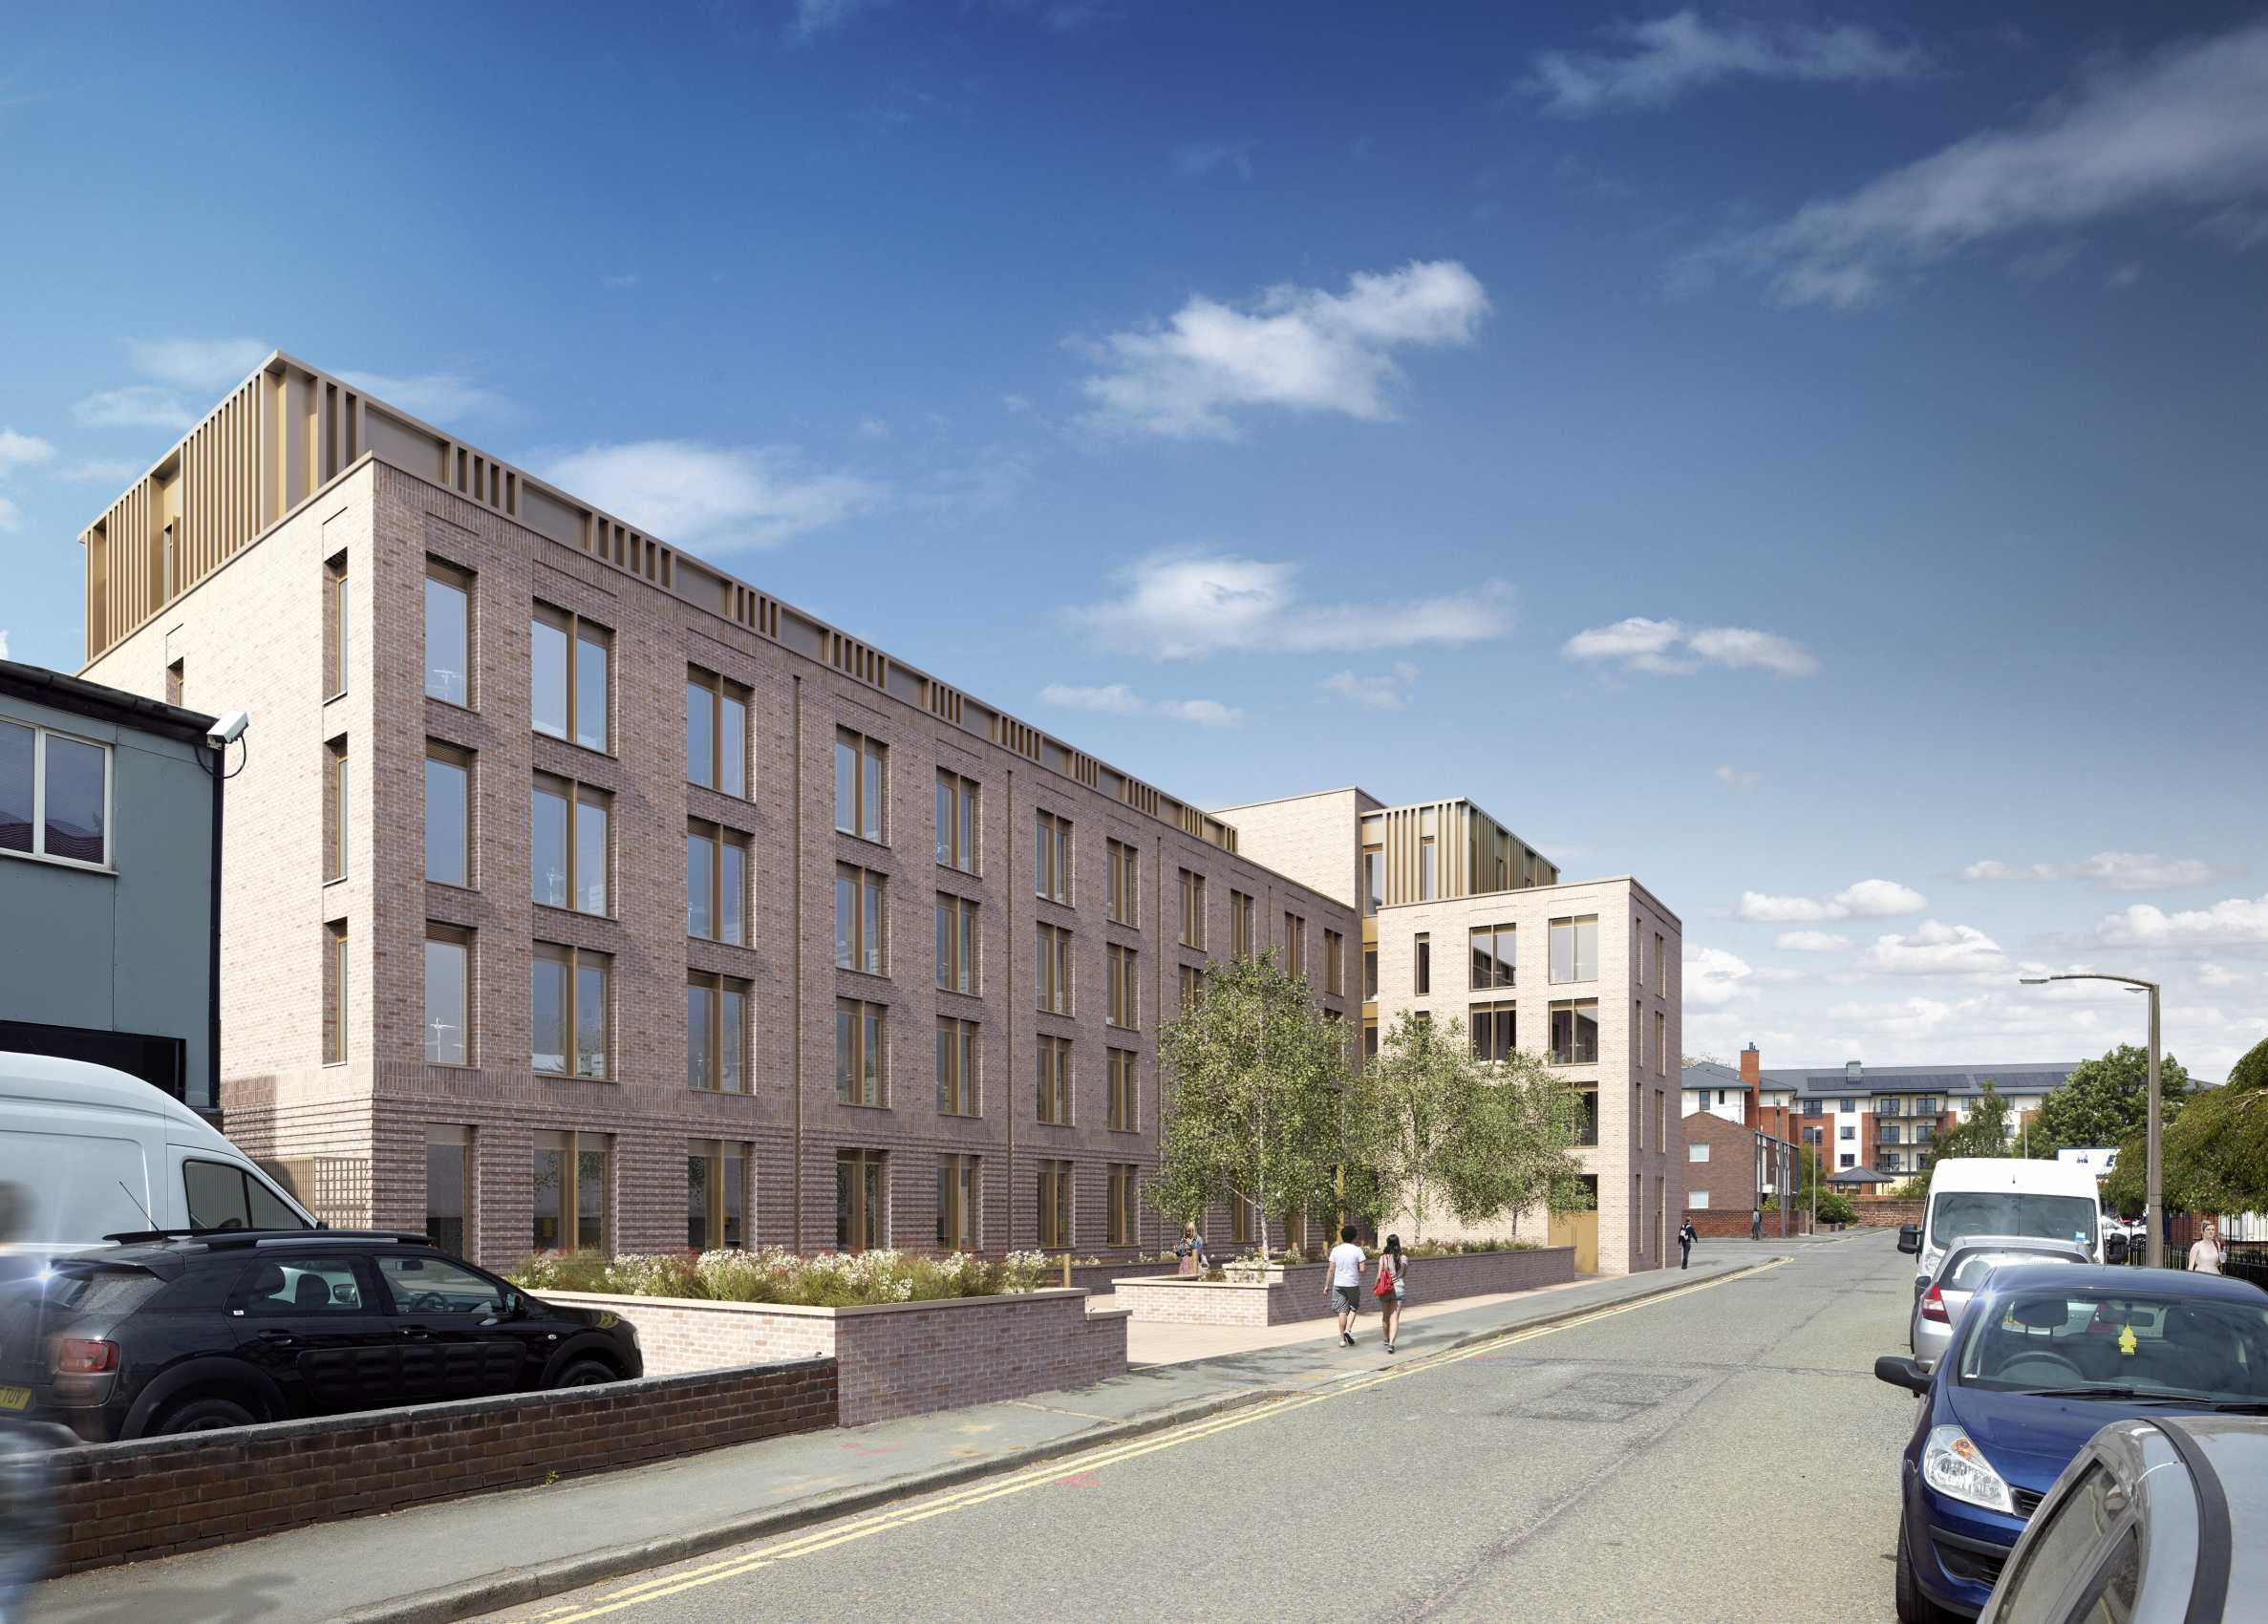 Luxury student accommodation near Liverpool and Manchester1 - Stonehard